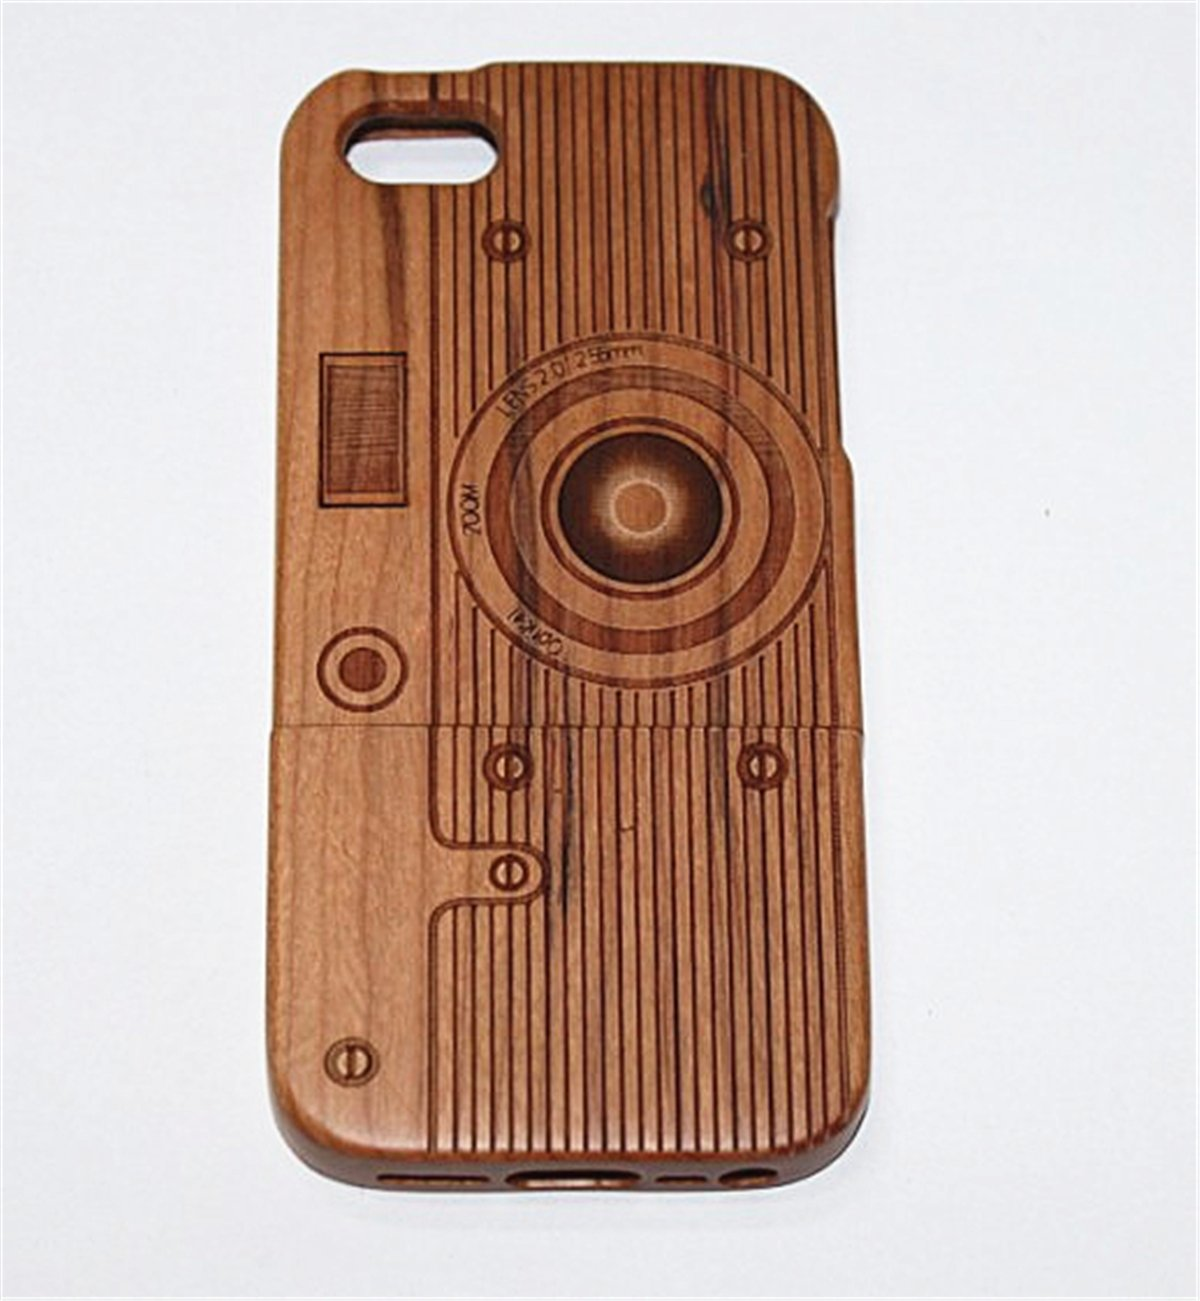 iPhone 6/6S Plus Case, Firefish Unique Handmade Natural Wood Wooden Hard Case Cover For iPhone 6/6S Plus High Impact absorbent Shell ( With A Stylus) -Camera